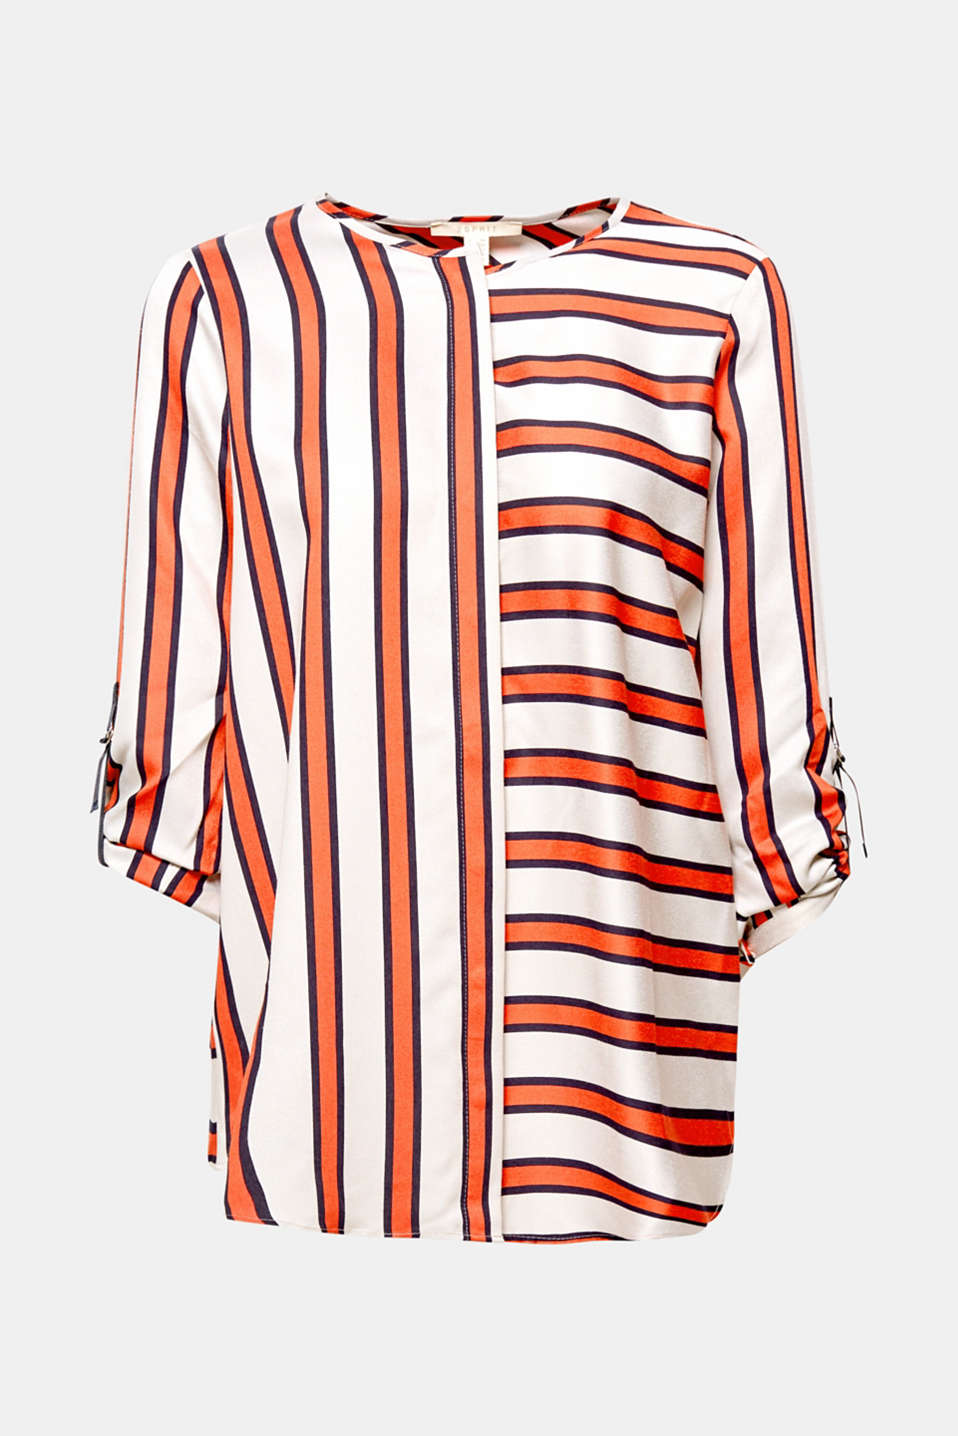 Fashion piece: On this flowing blouse, the opposing stripes create an innovative trend look in combination with the draped back!